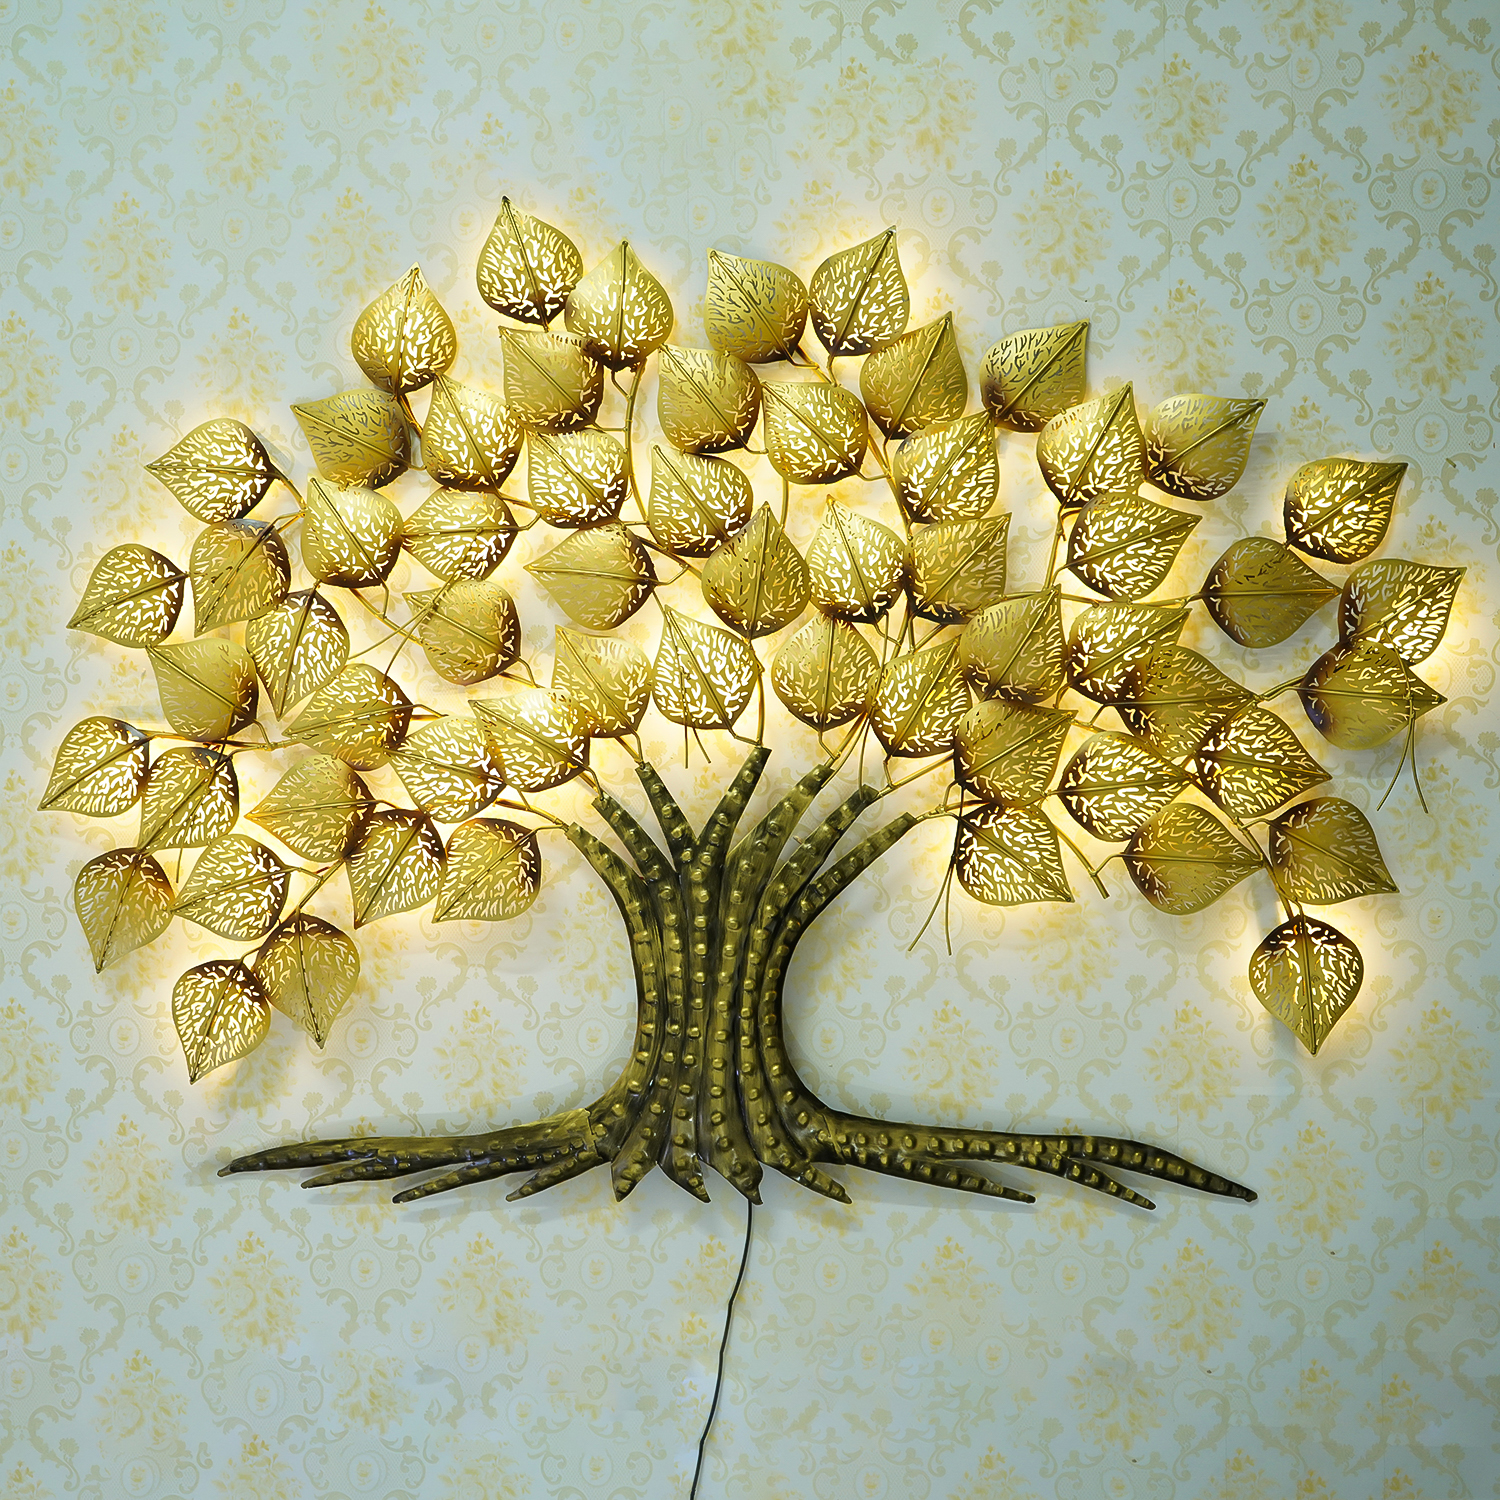 Golden Leaves Tree Handcrafted Iron Wall Hanging with background LEDs Indian Home Decor